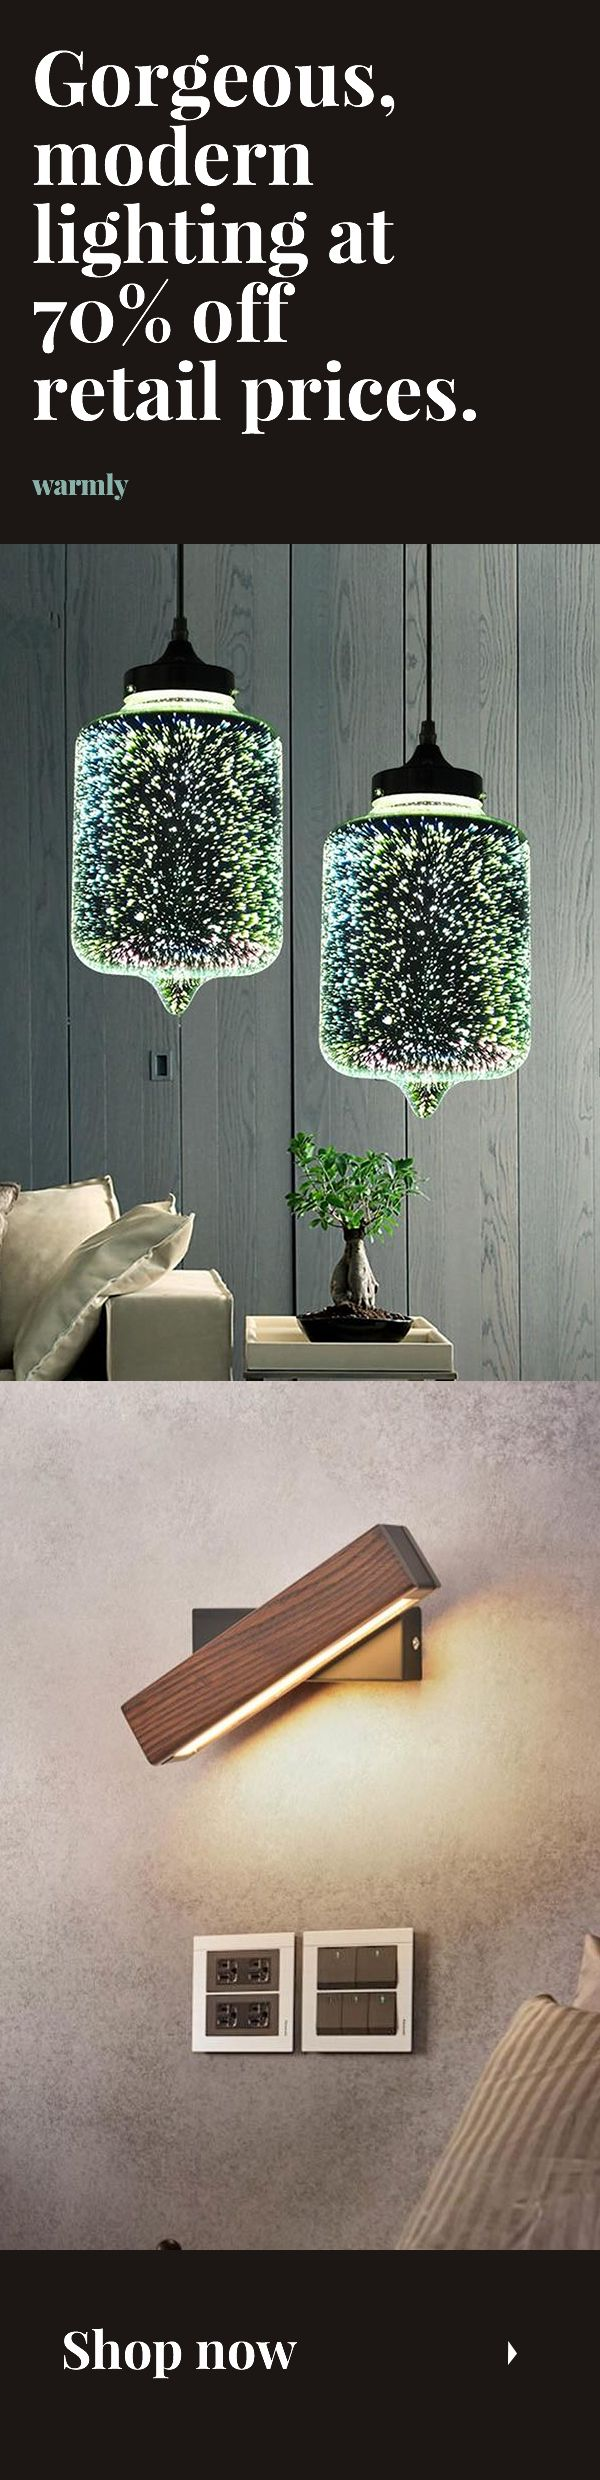 Photo of Best-selling modern lights at 70% off retail (or more).